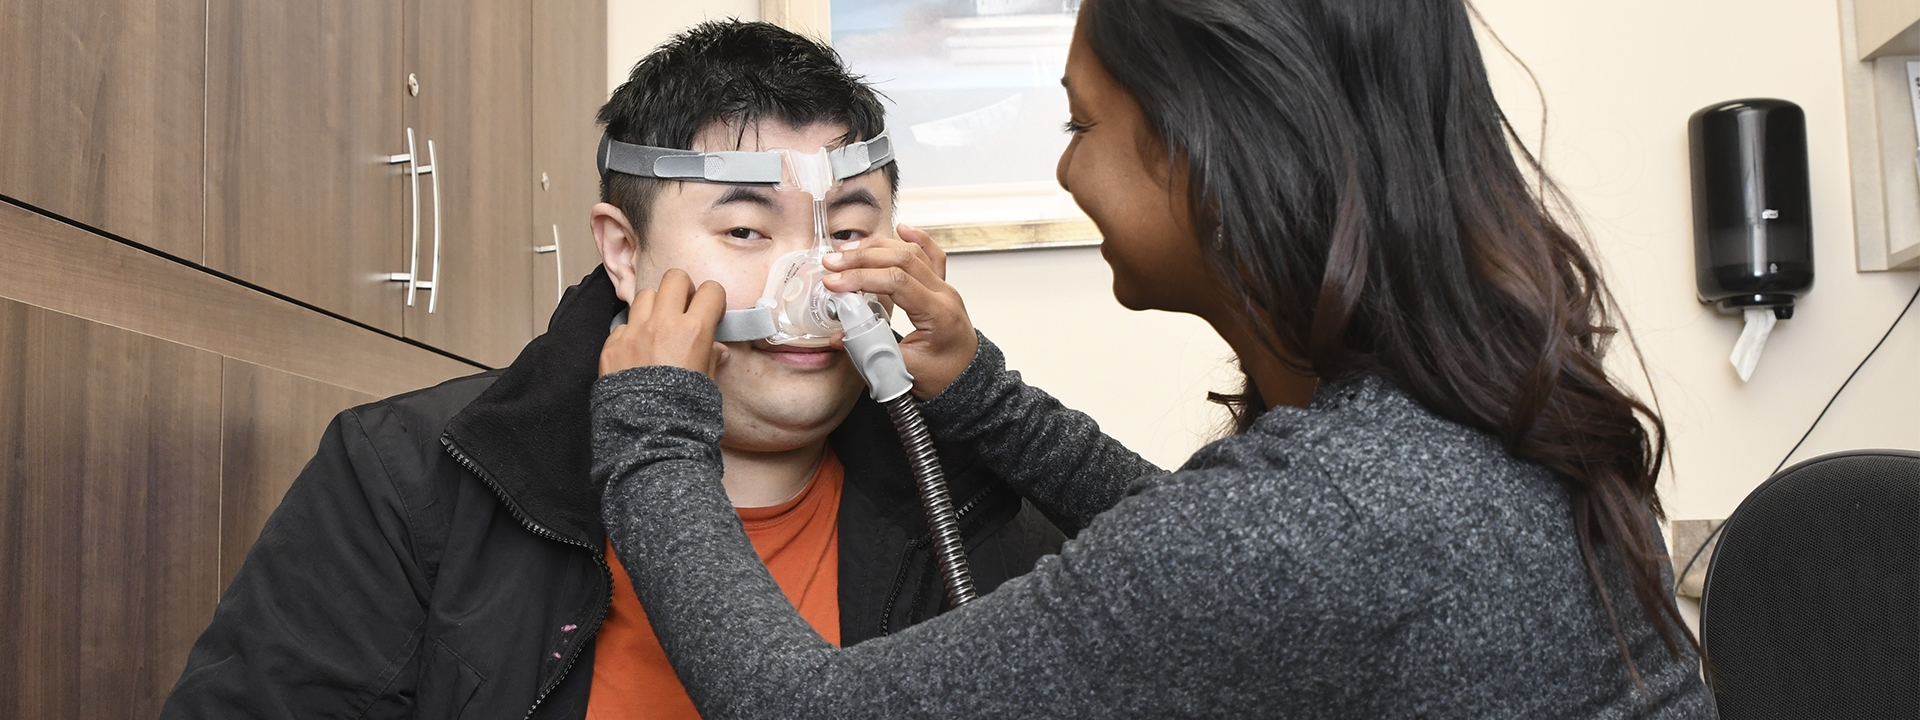 Fitting a cpap machine to a patient